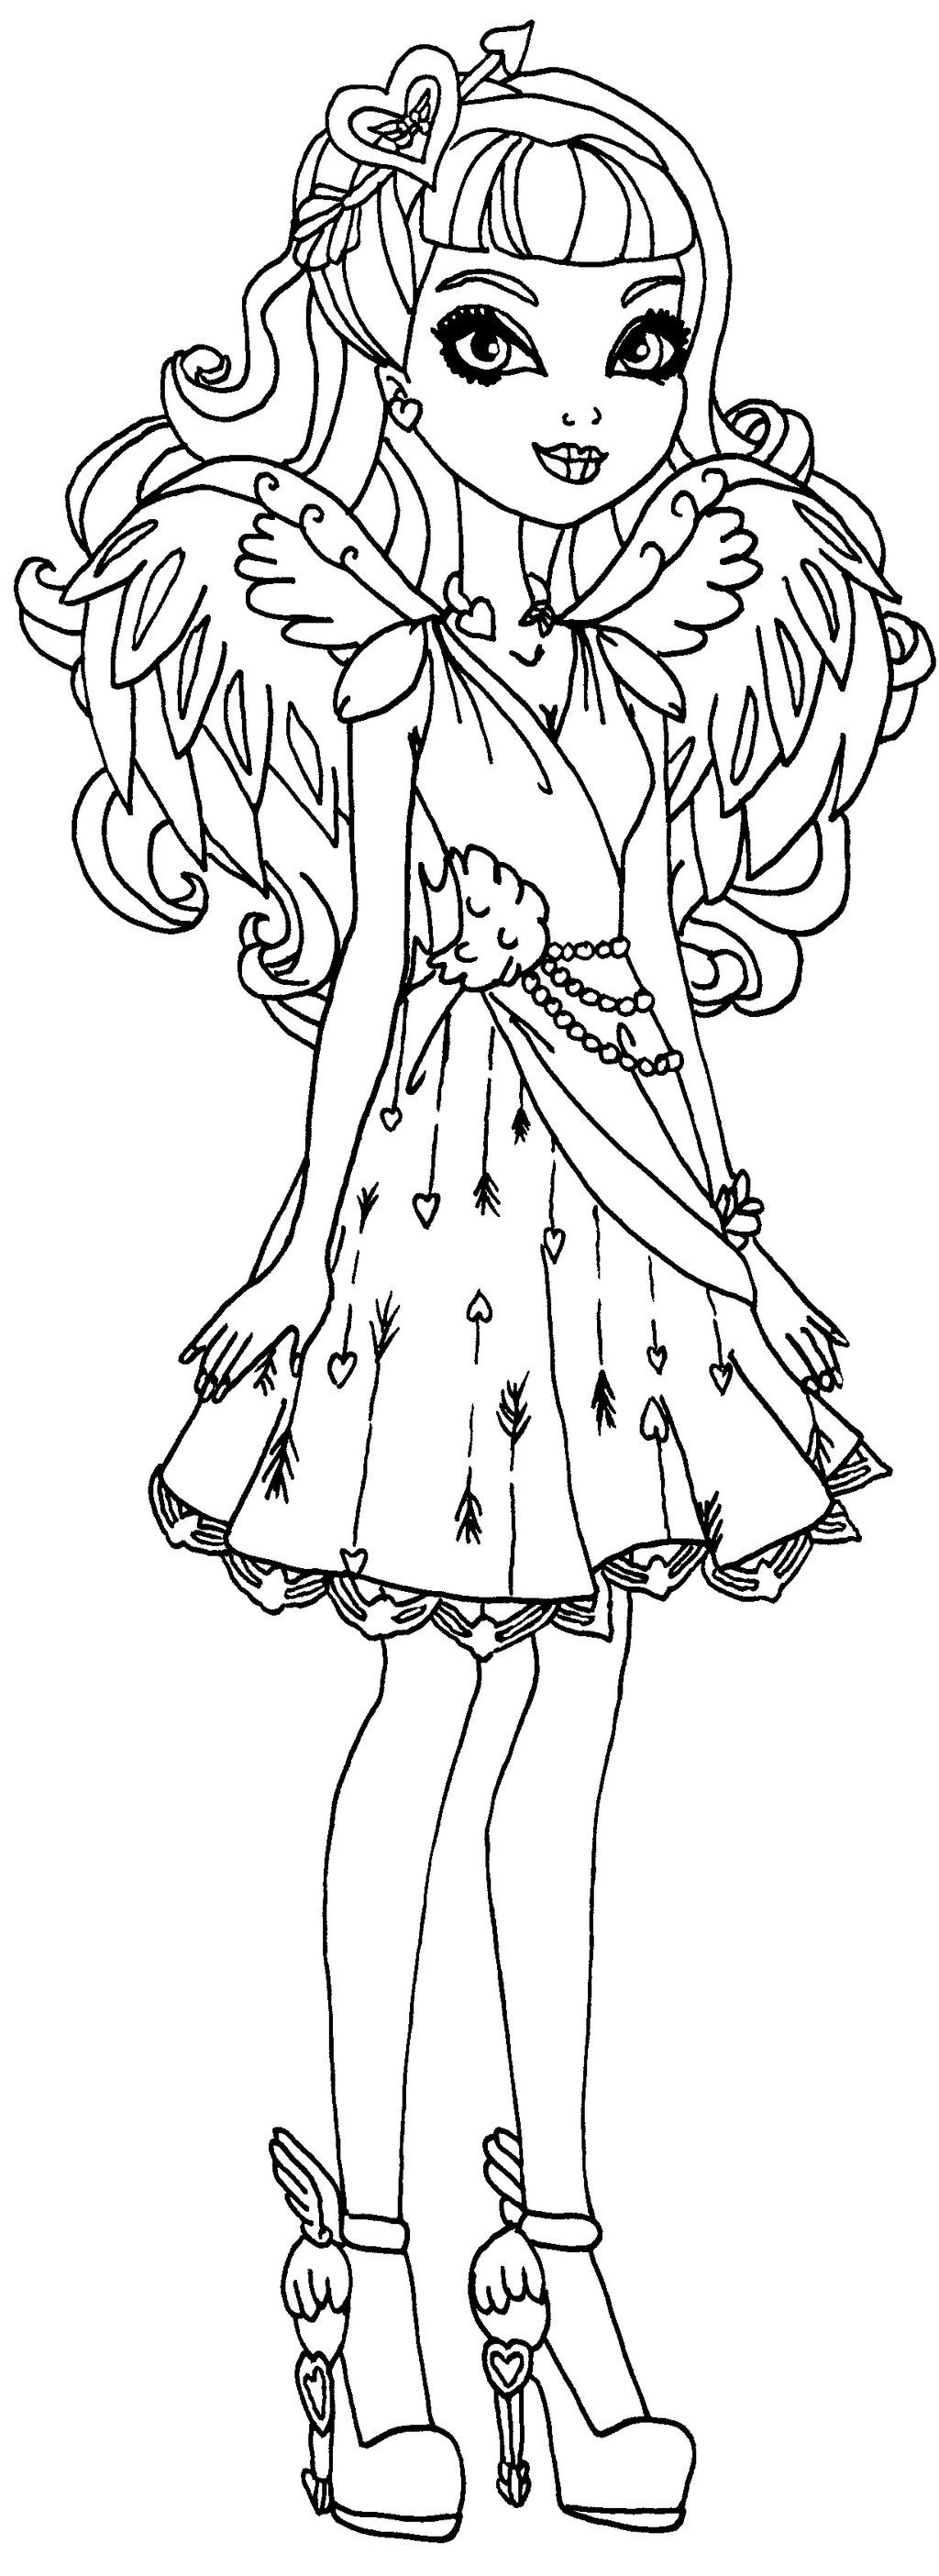 C.A.Cupid Ever After High | 2016 coloring pages | Pinterest | Cupid ...